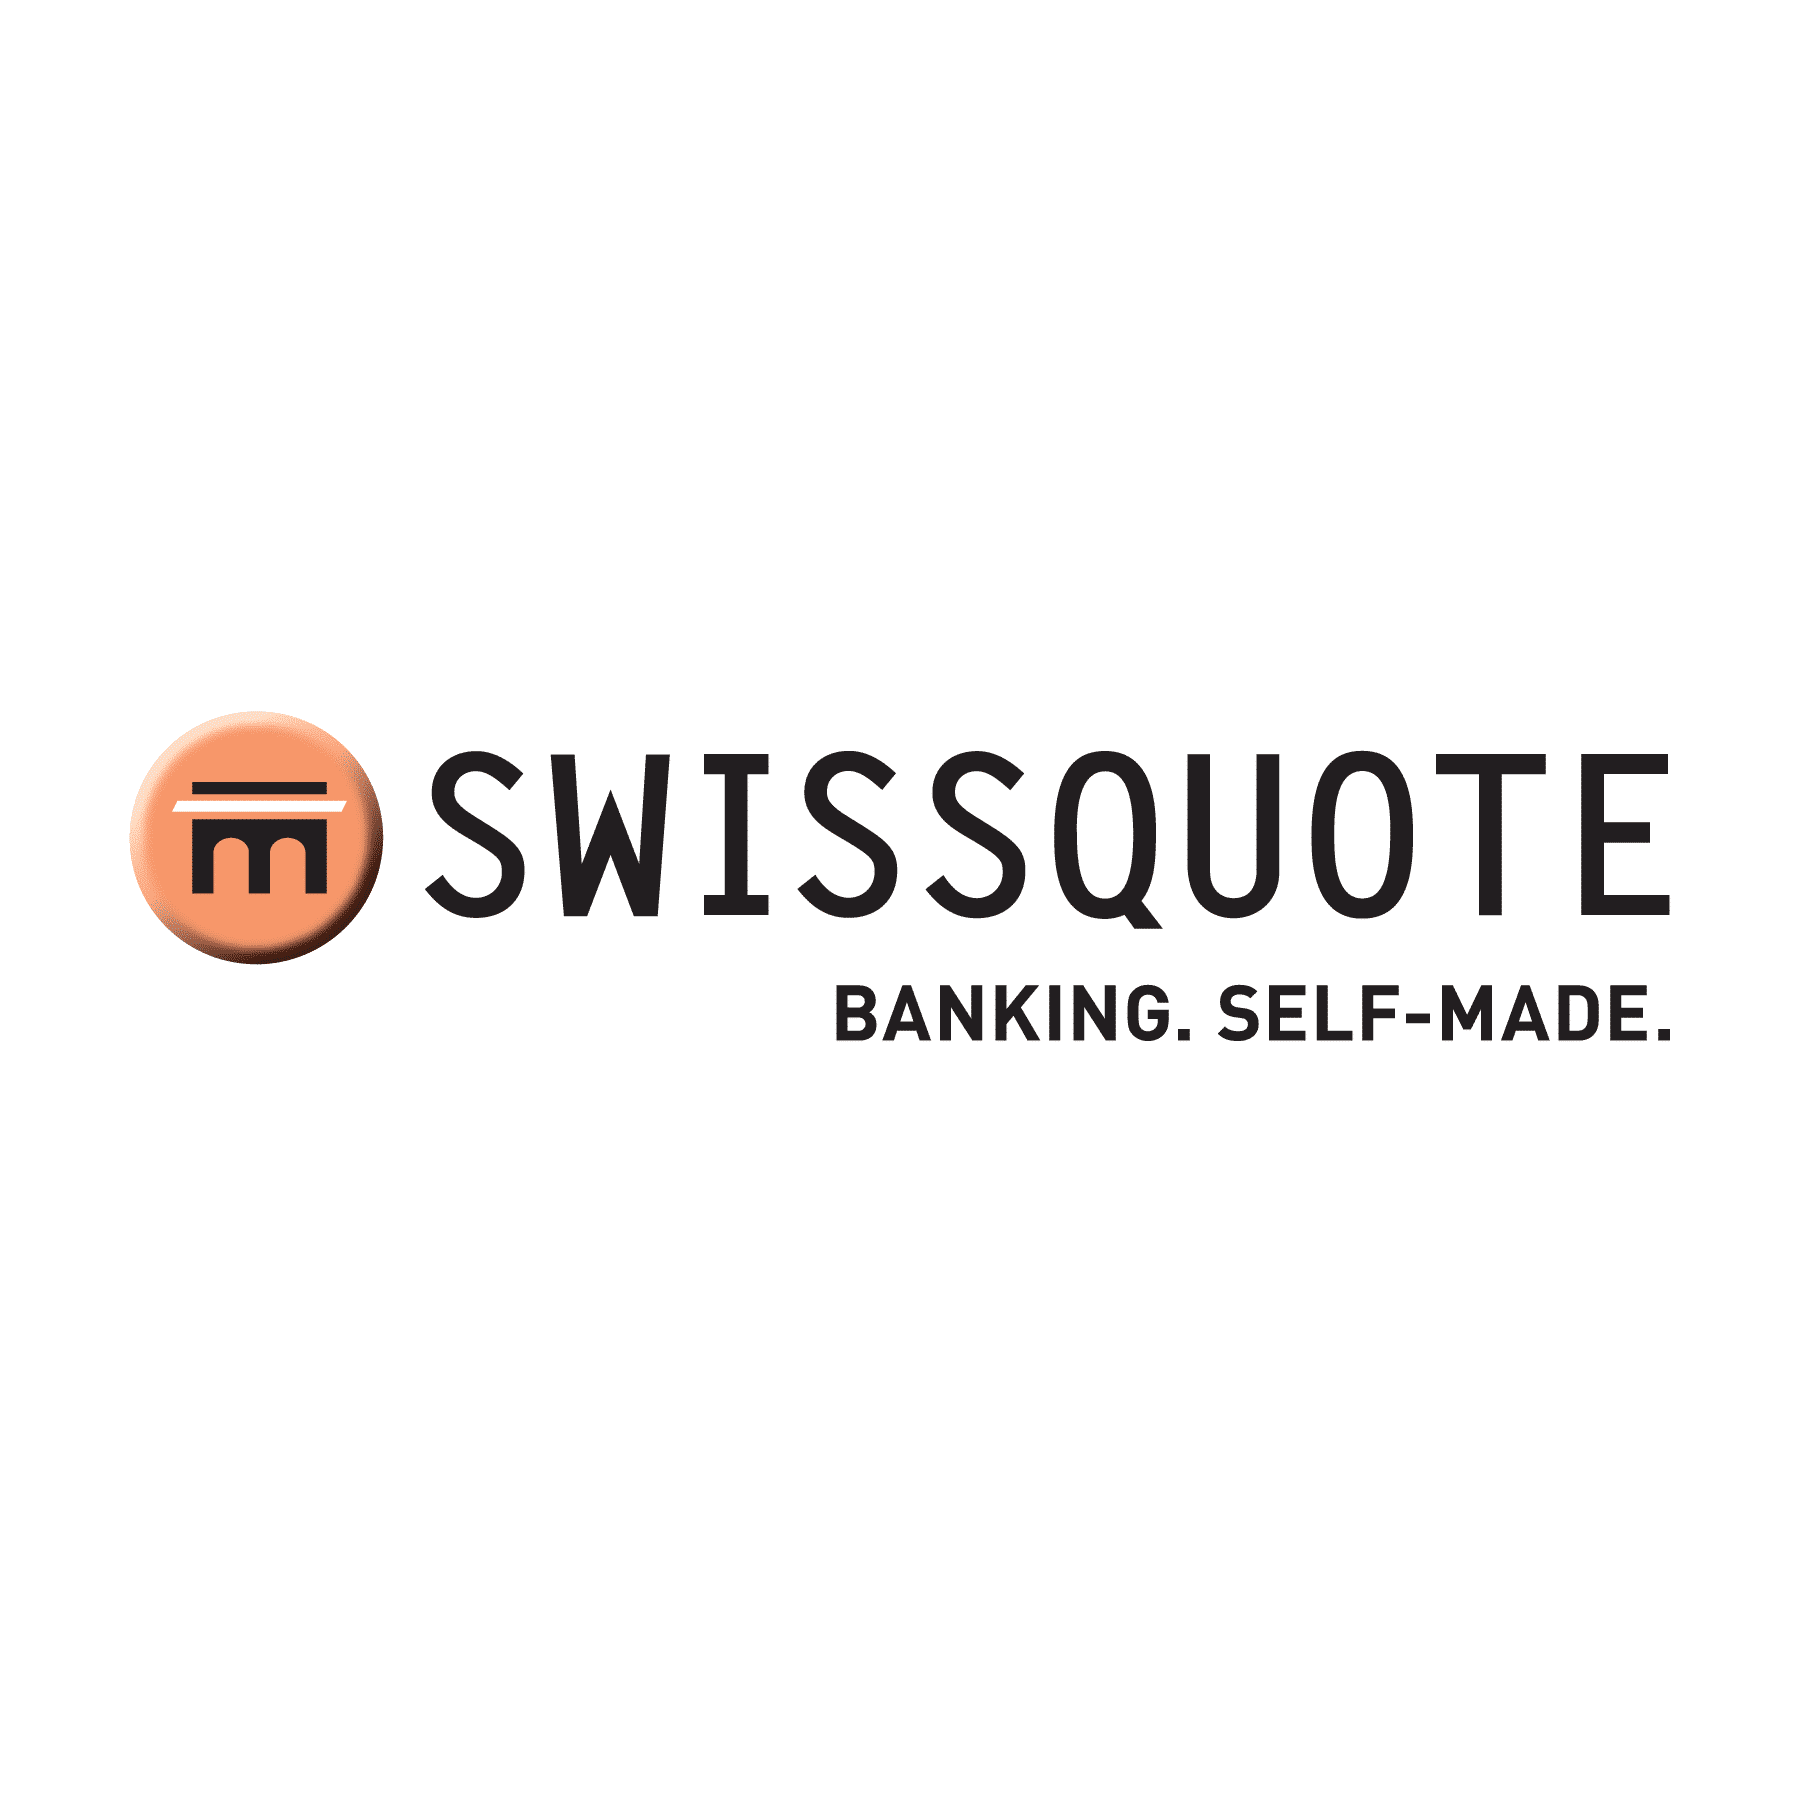 Swissquote to Revamp Board of Directors, Welcomes Jean-Christophe Pernollet